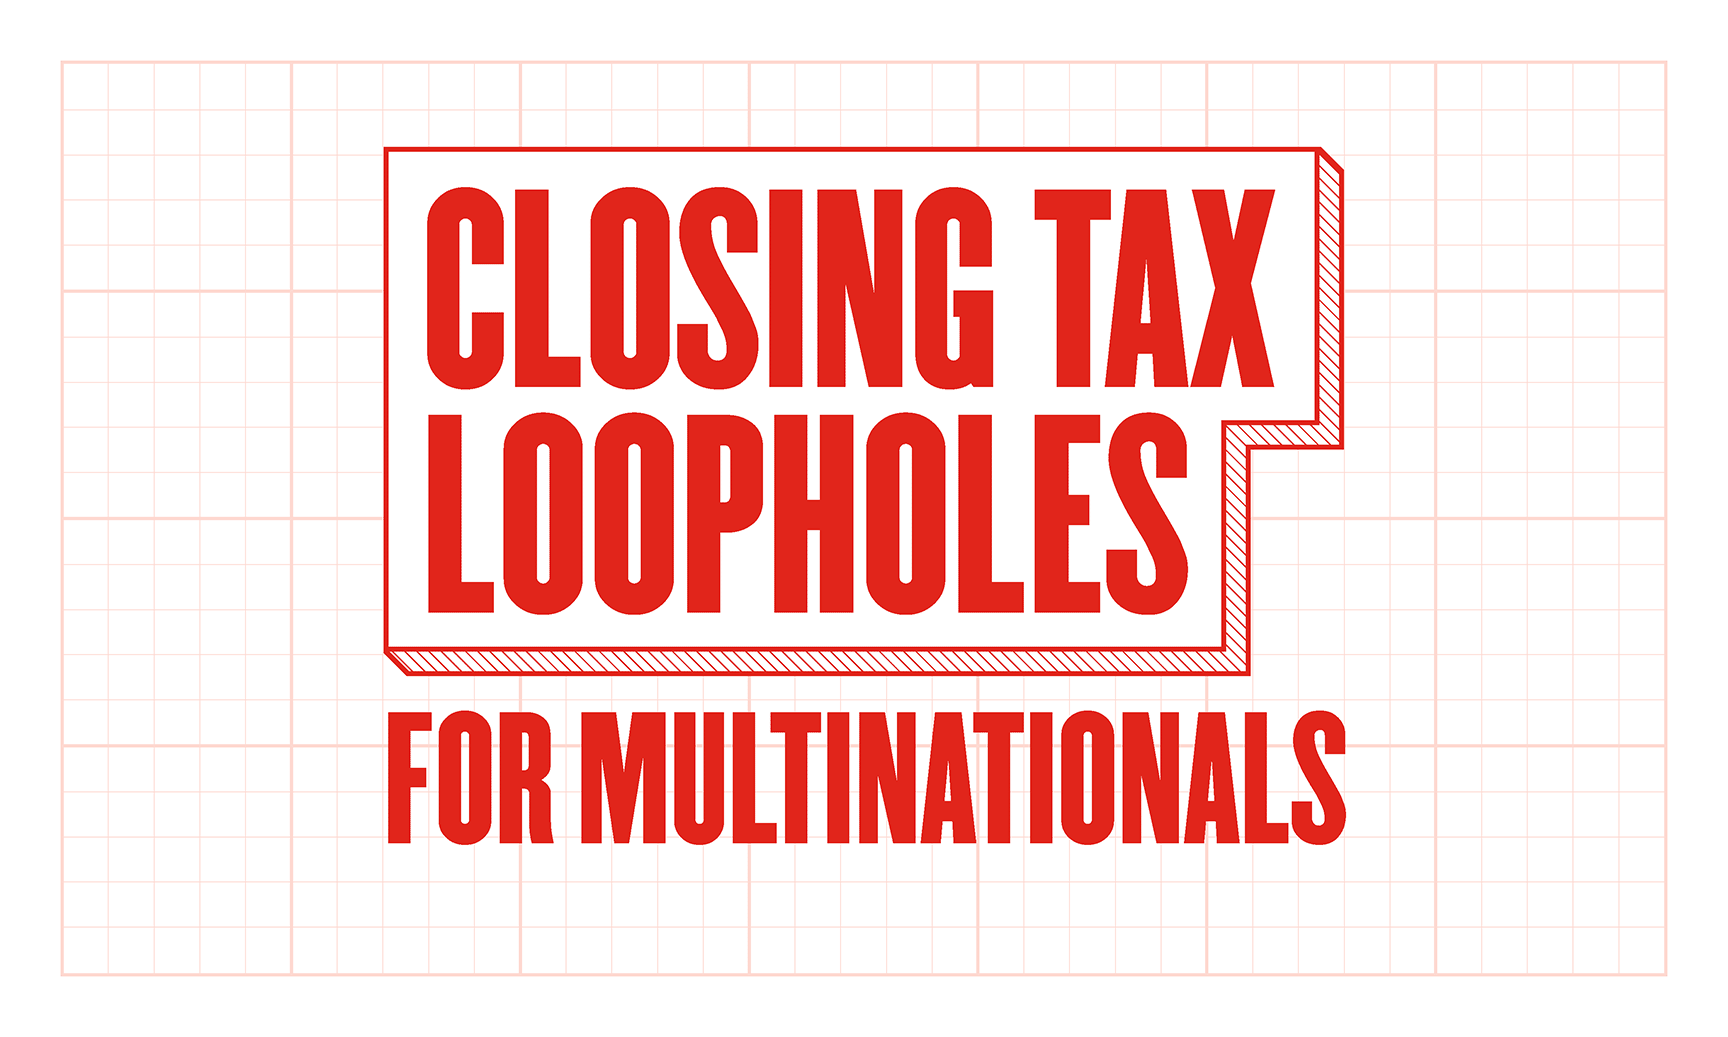 Closing tax loopholes for multinationals